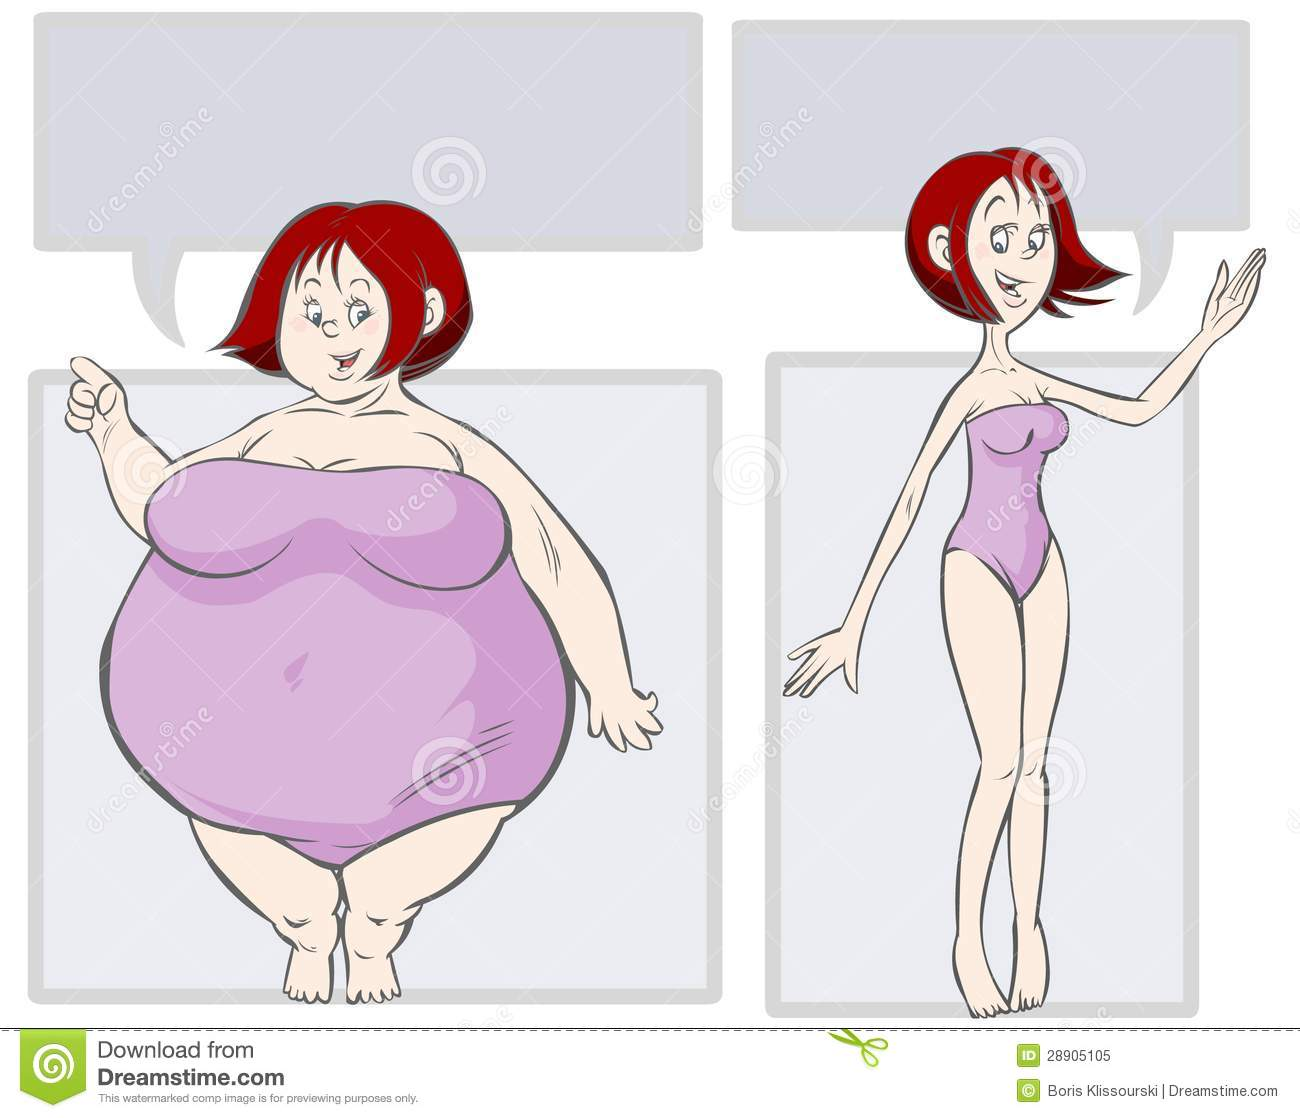 Fat Clipart Slim Person - Female Clipart Of People , Free Transparent  Clipart - ClipartKey